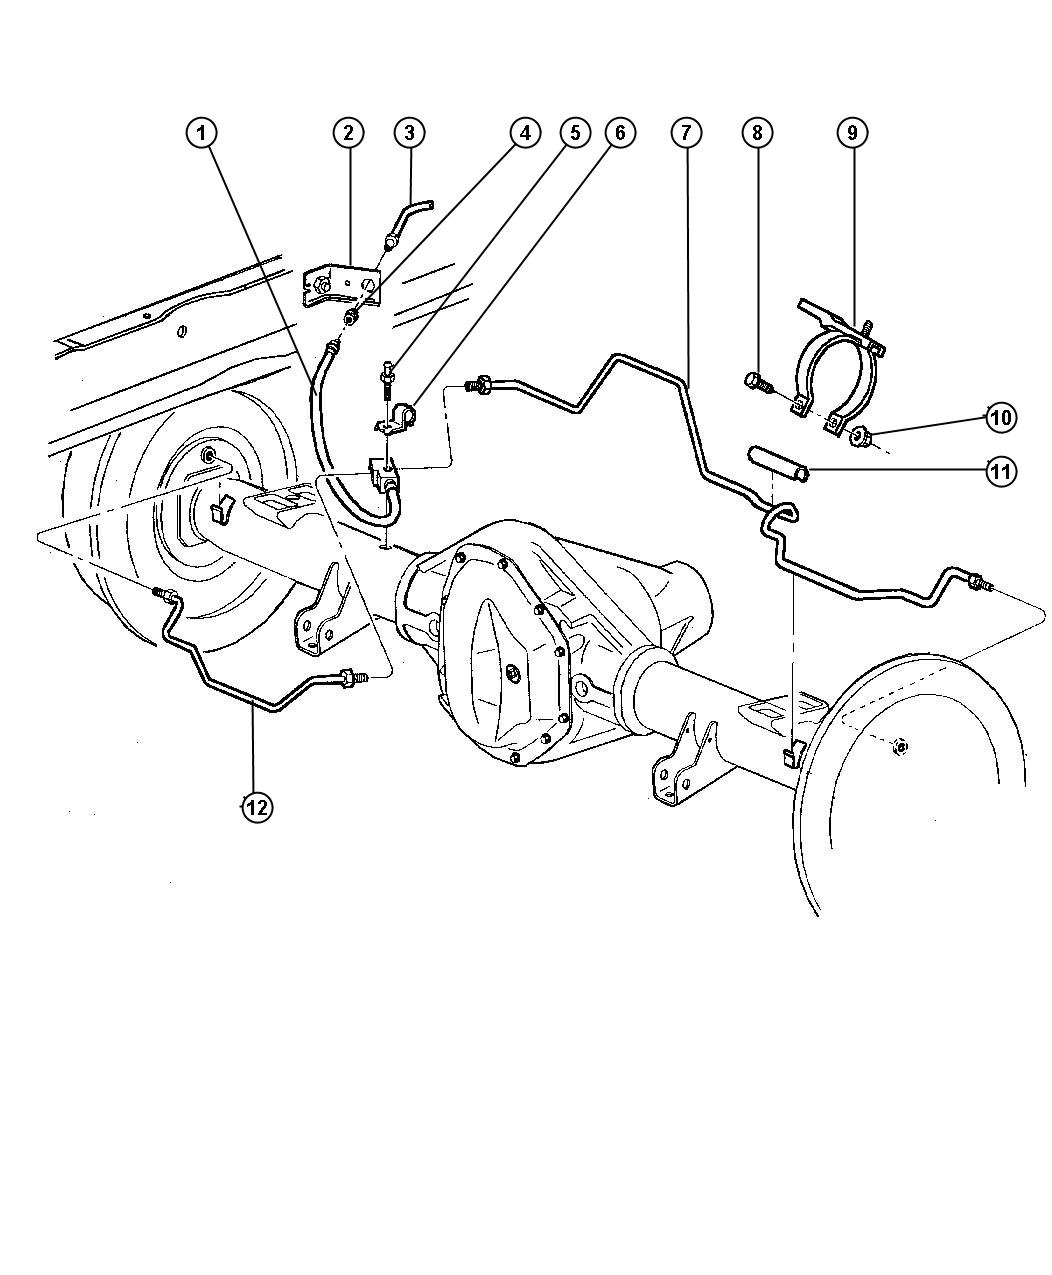 Dodge Dakota Brake System Diagram : Dodge ram stereo wiring diagram wirdig readingrat